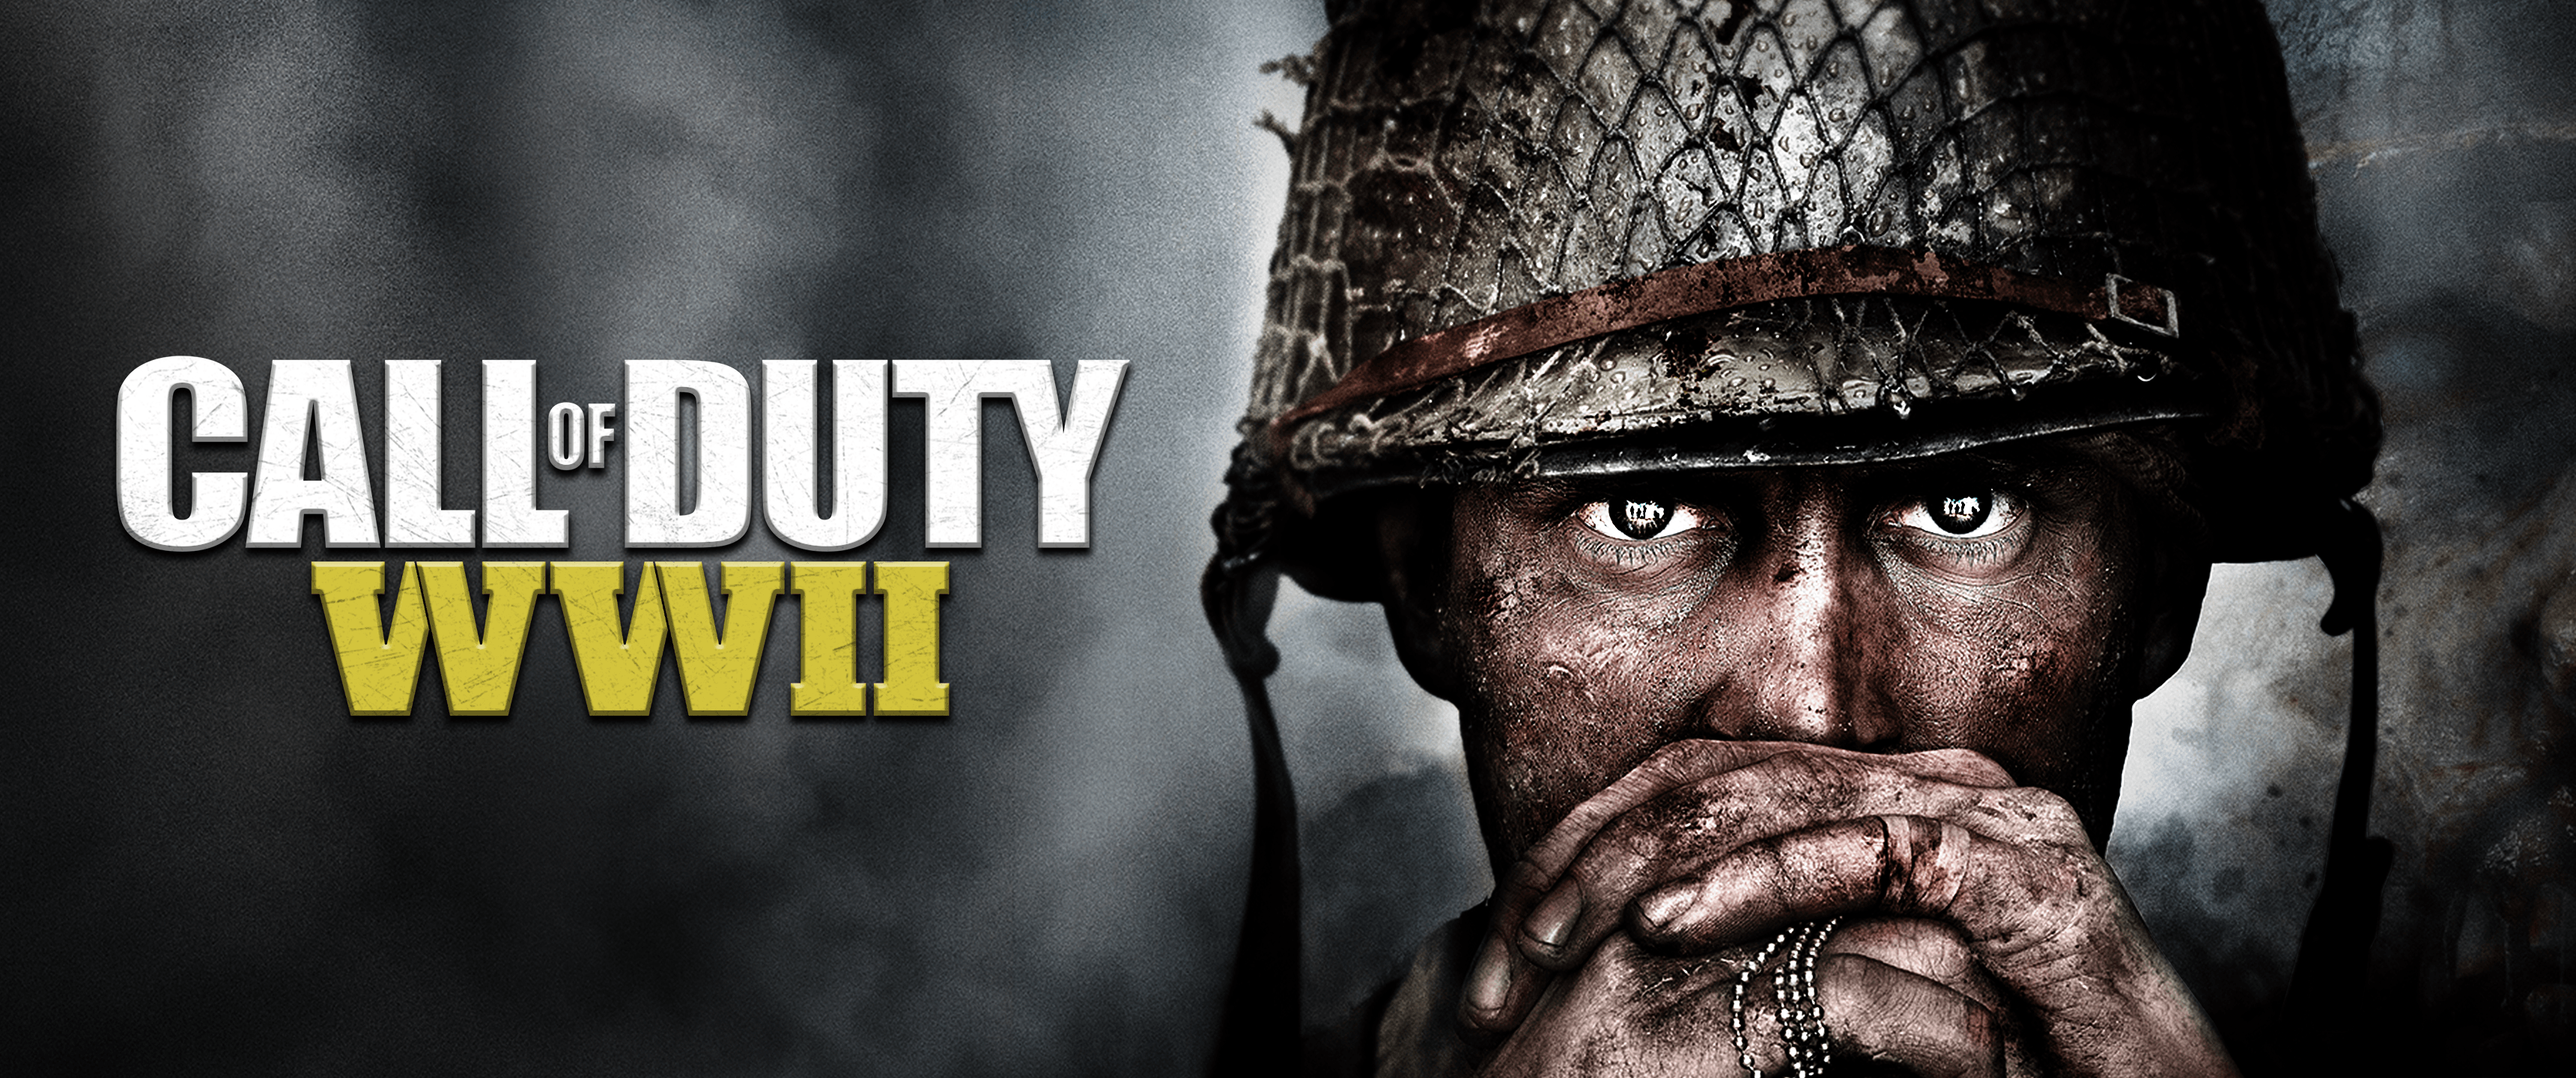 Call Of Duty Wwii Wallpapers Wallpaper Cave